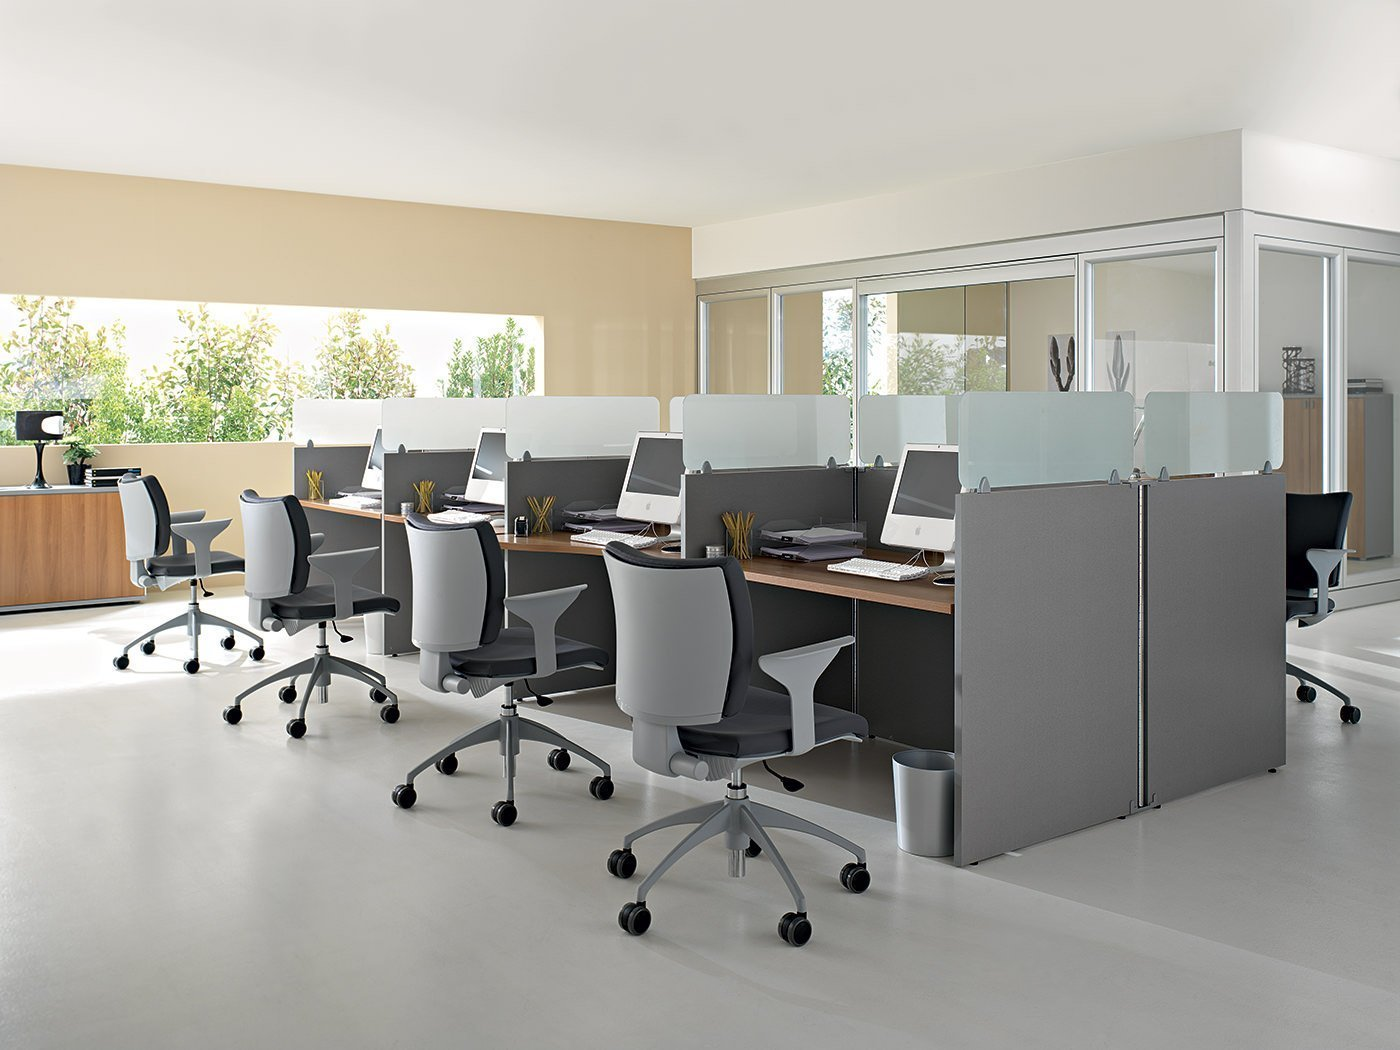 Technoplanet furniture operating office for Mobili office